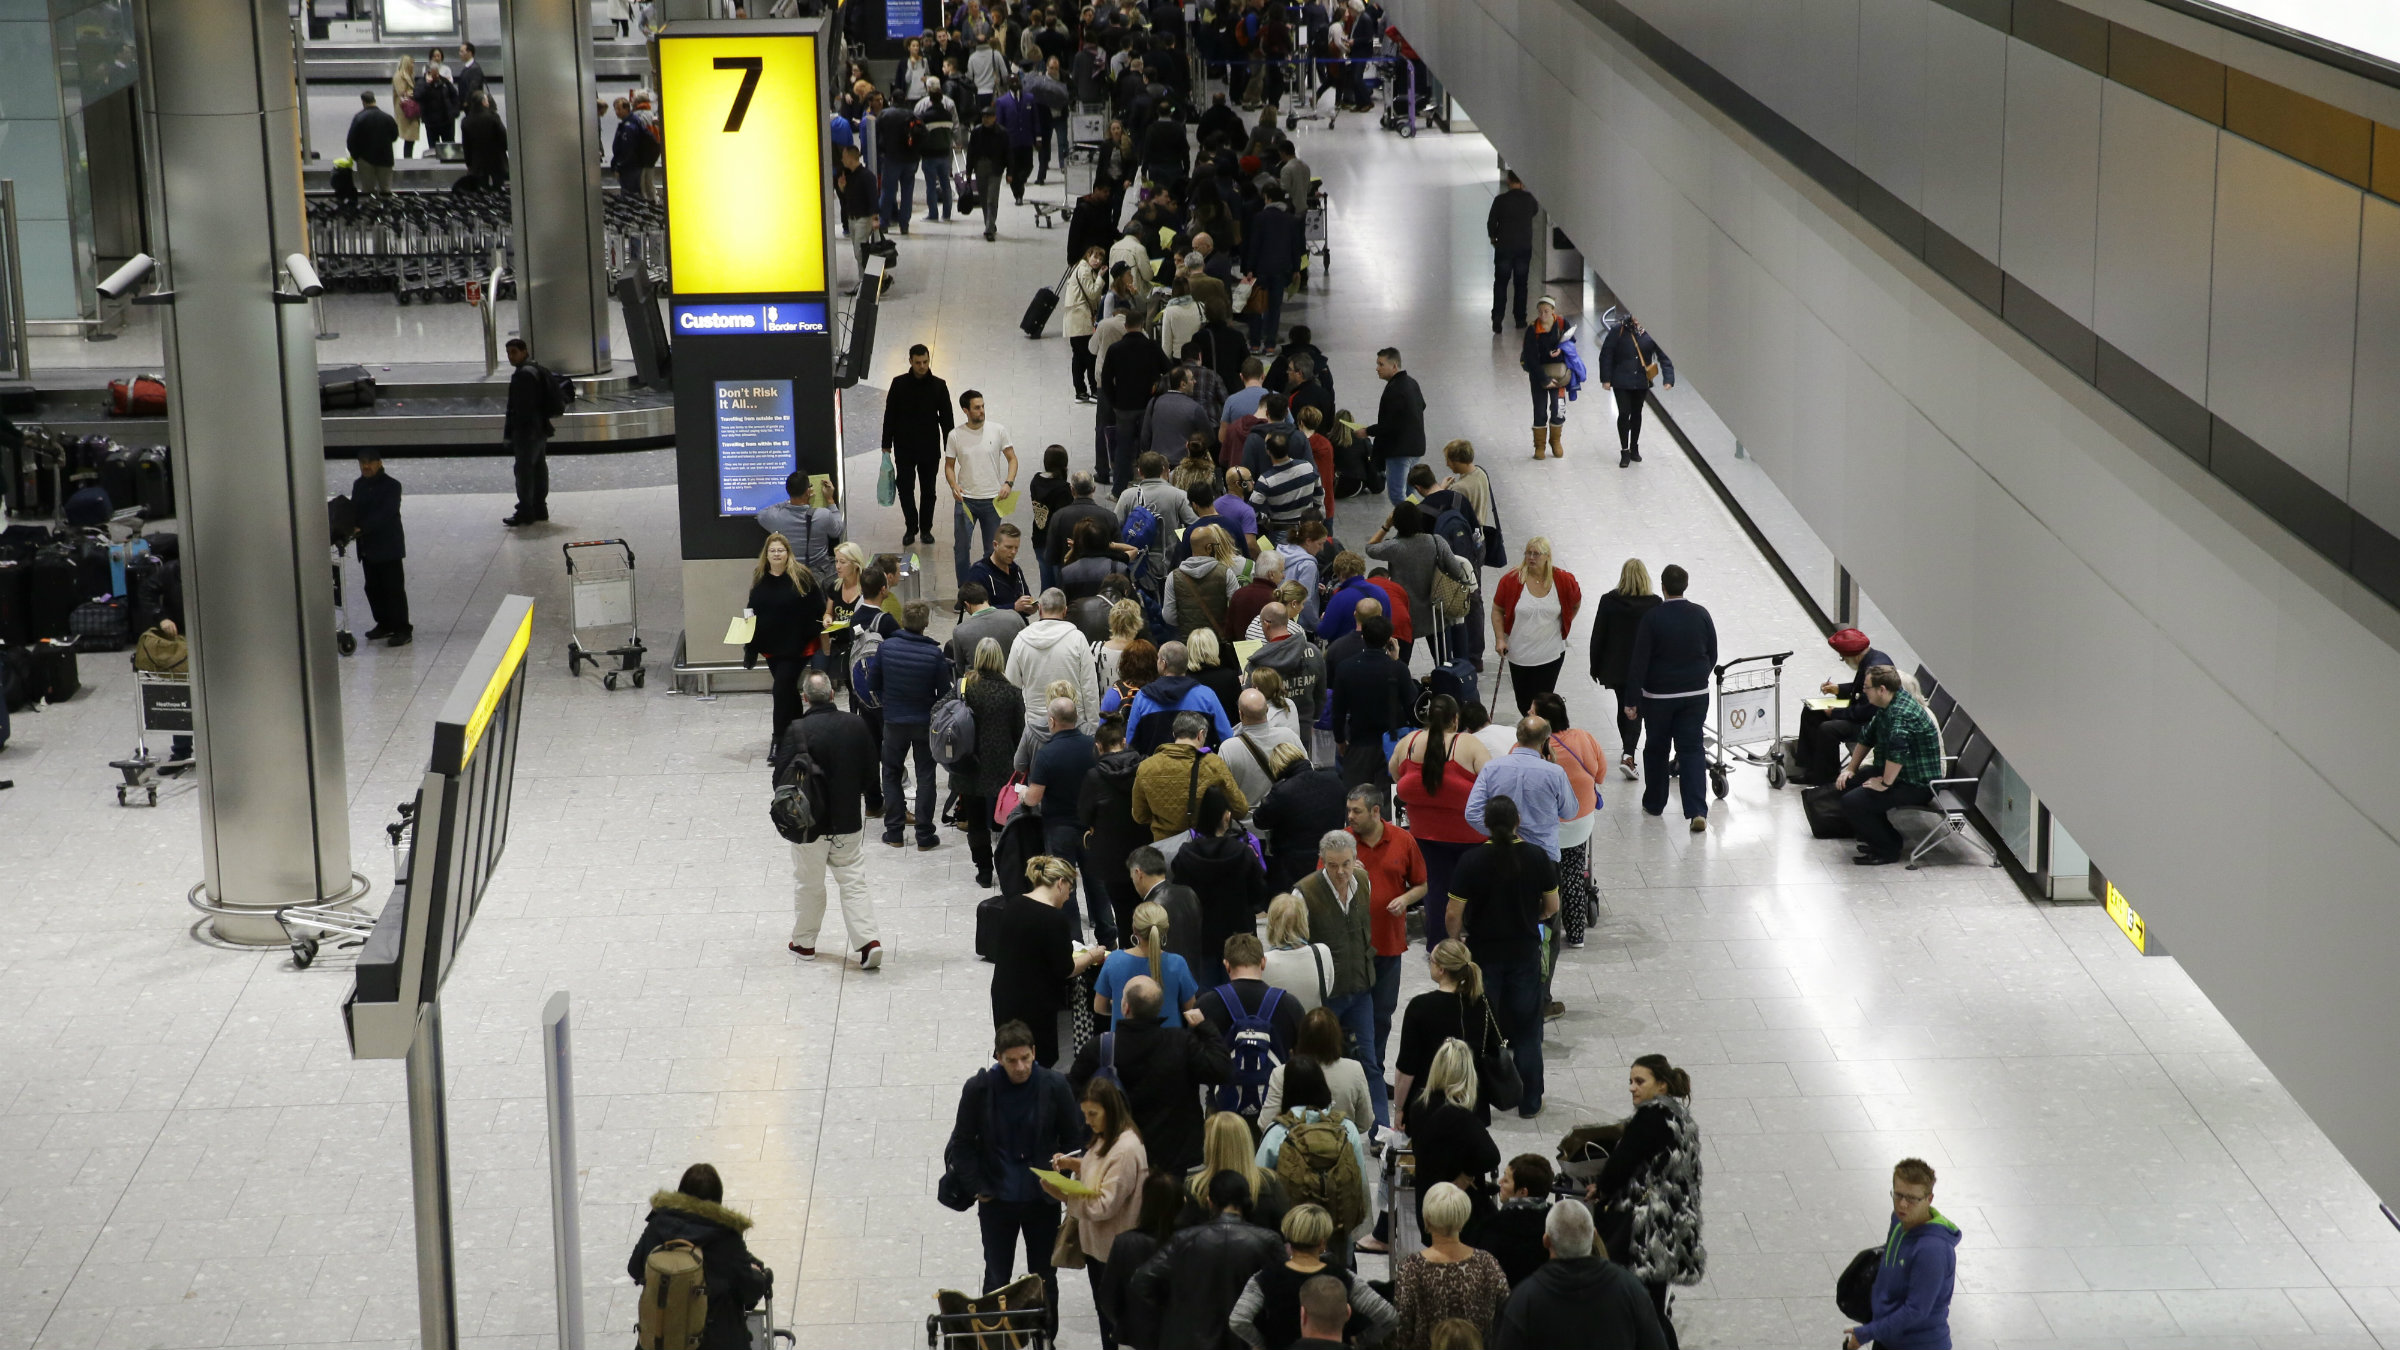 People queue in the luggage hall of Terminal 5 at Heathrow Airport in London, Friday, Dec. 12, 2014.